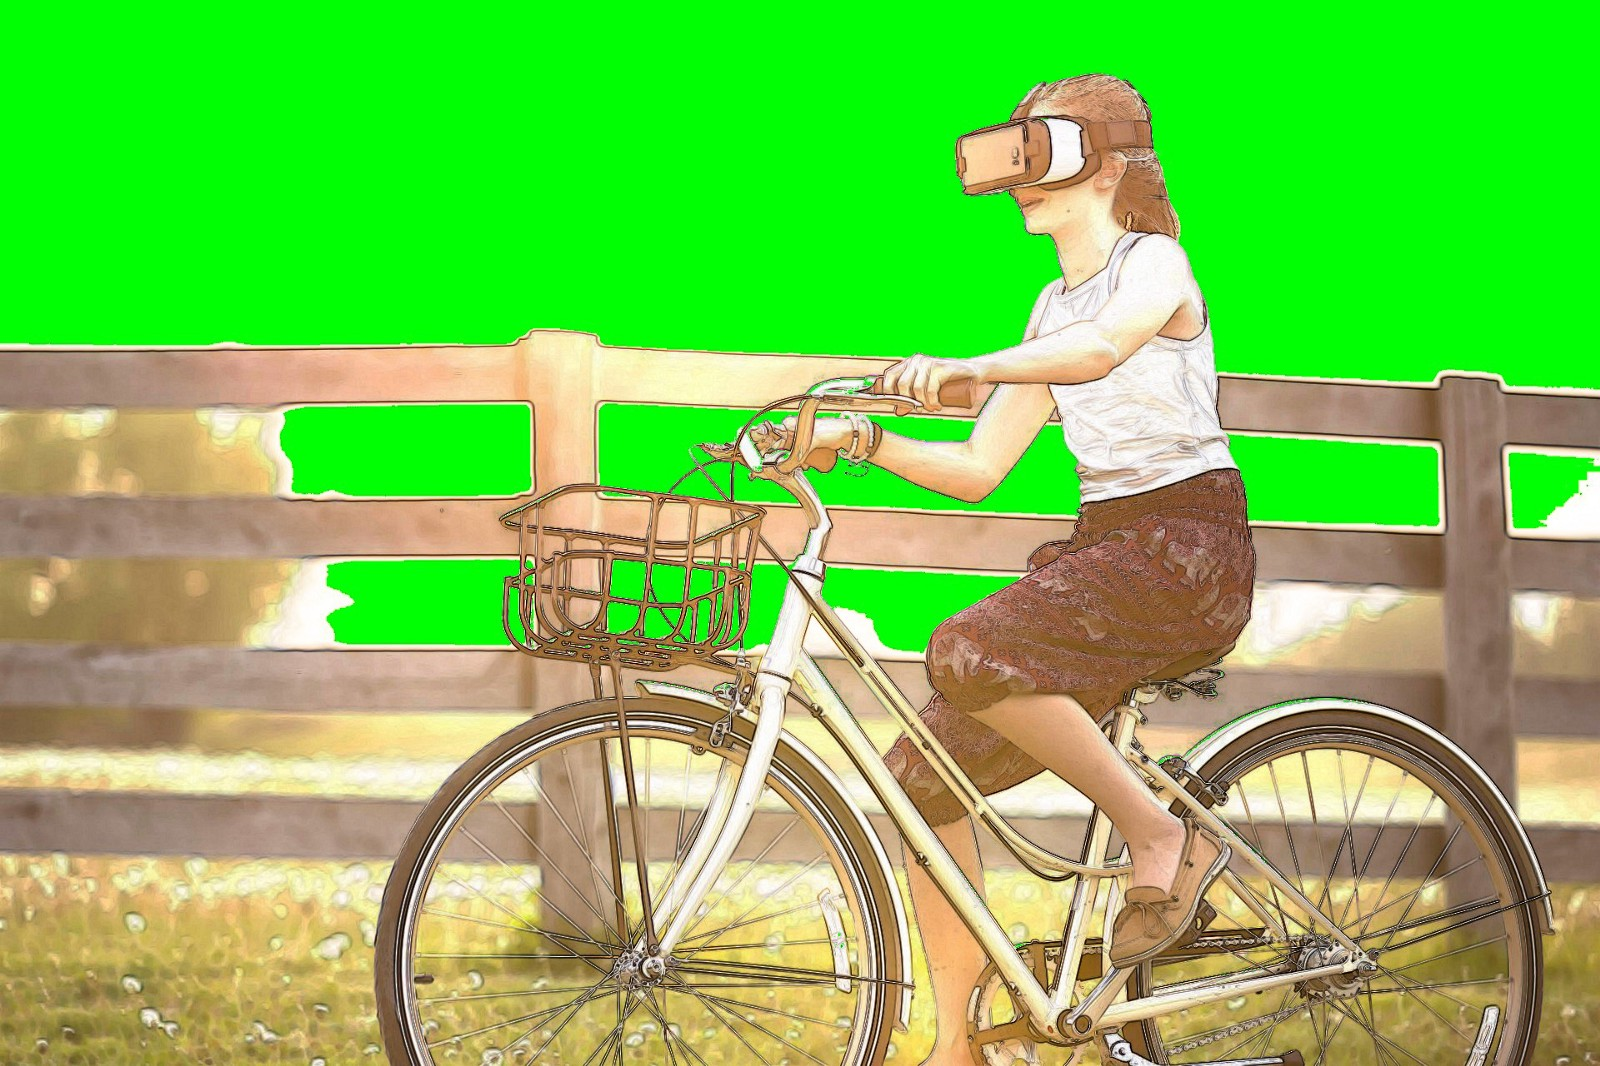 /the-benefits-of-augmented-realities-for-advertisers-c5c5b86e9458 feature image